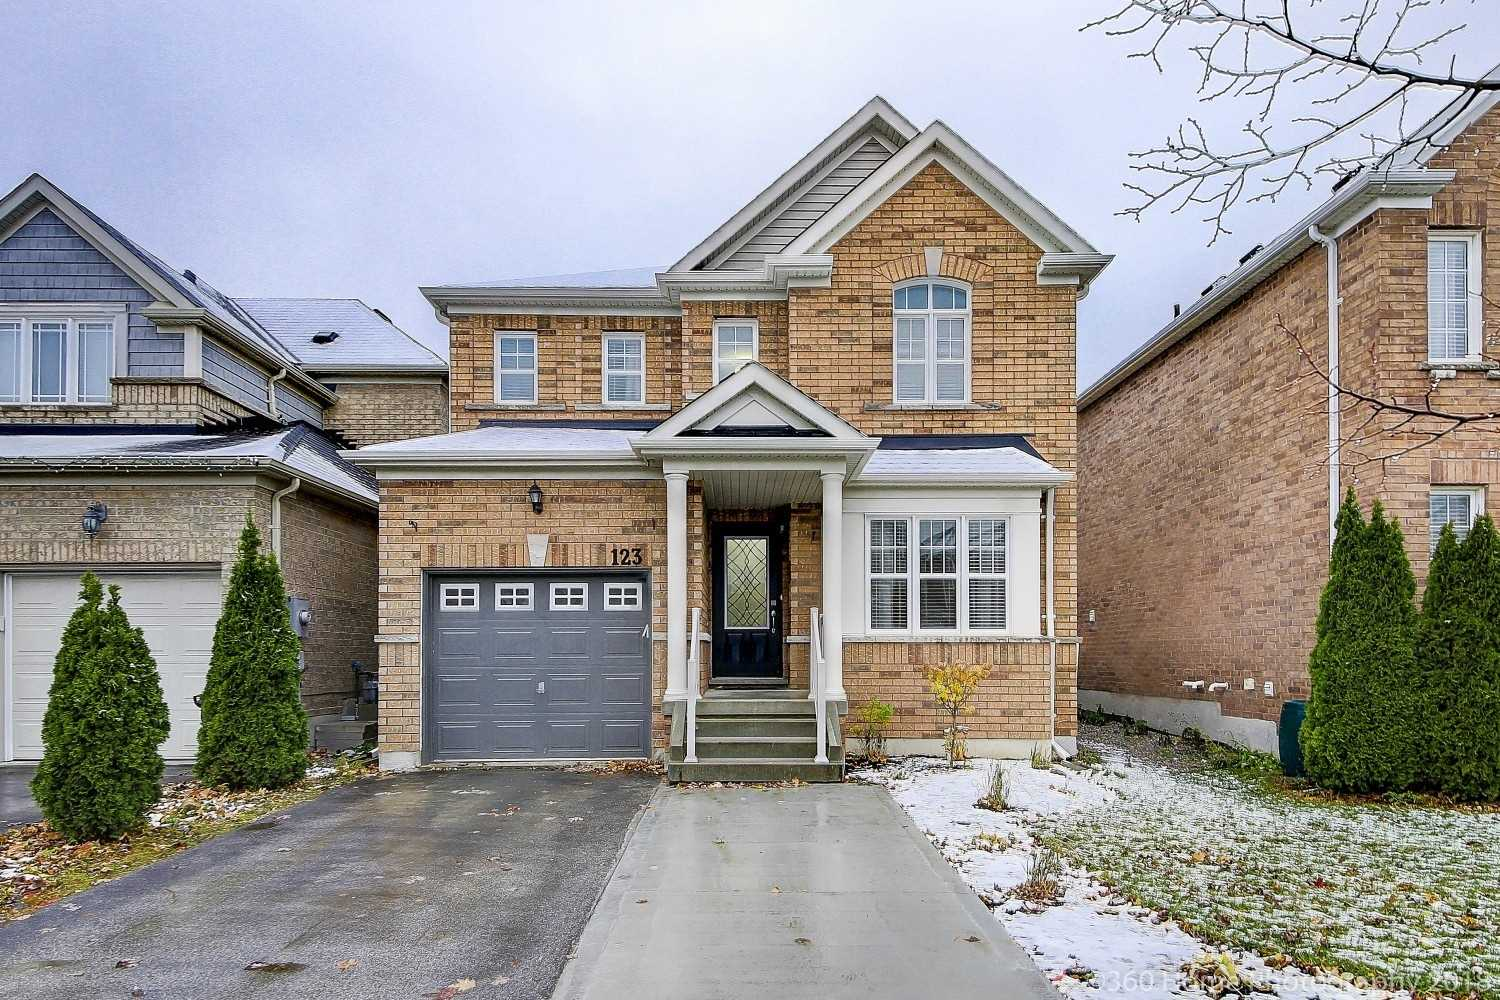 pictures of house for sale MLS: N4328076 located at 123 Faris St, Bradford West Gwillimbury L3Z1C4